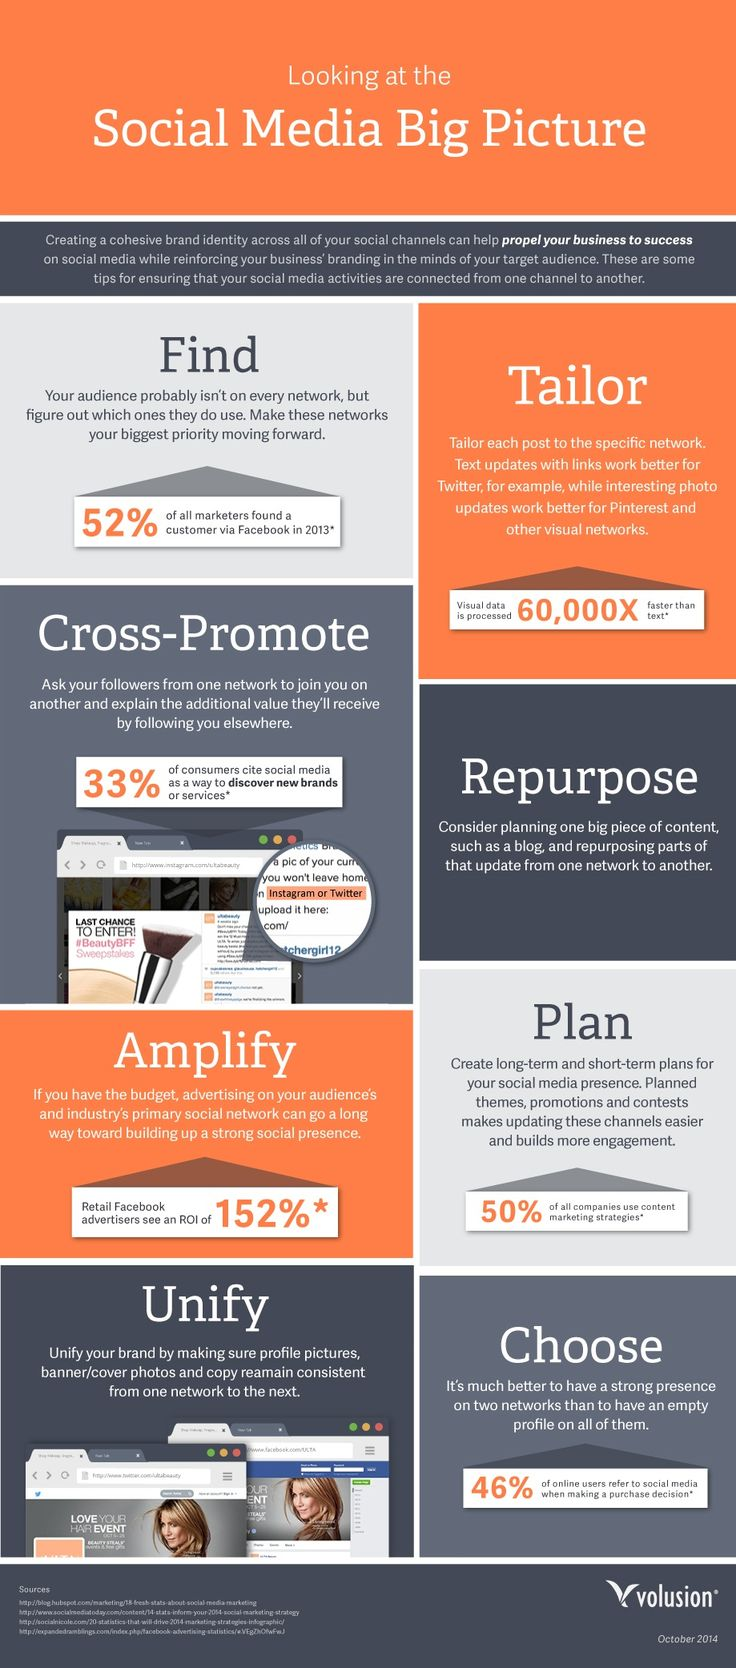 Cultivate Your Audience and Drive Engagement on #SocialMedia - #Infographic